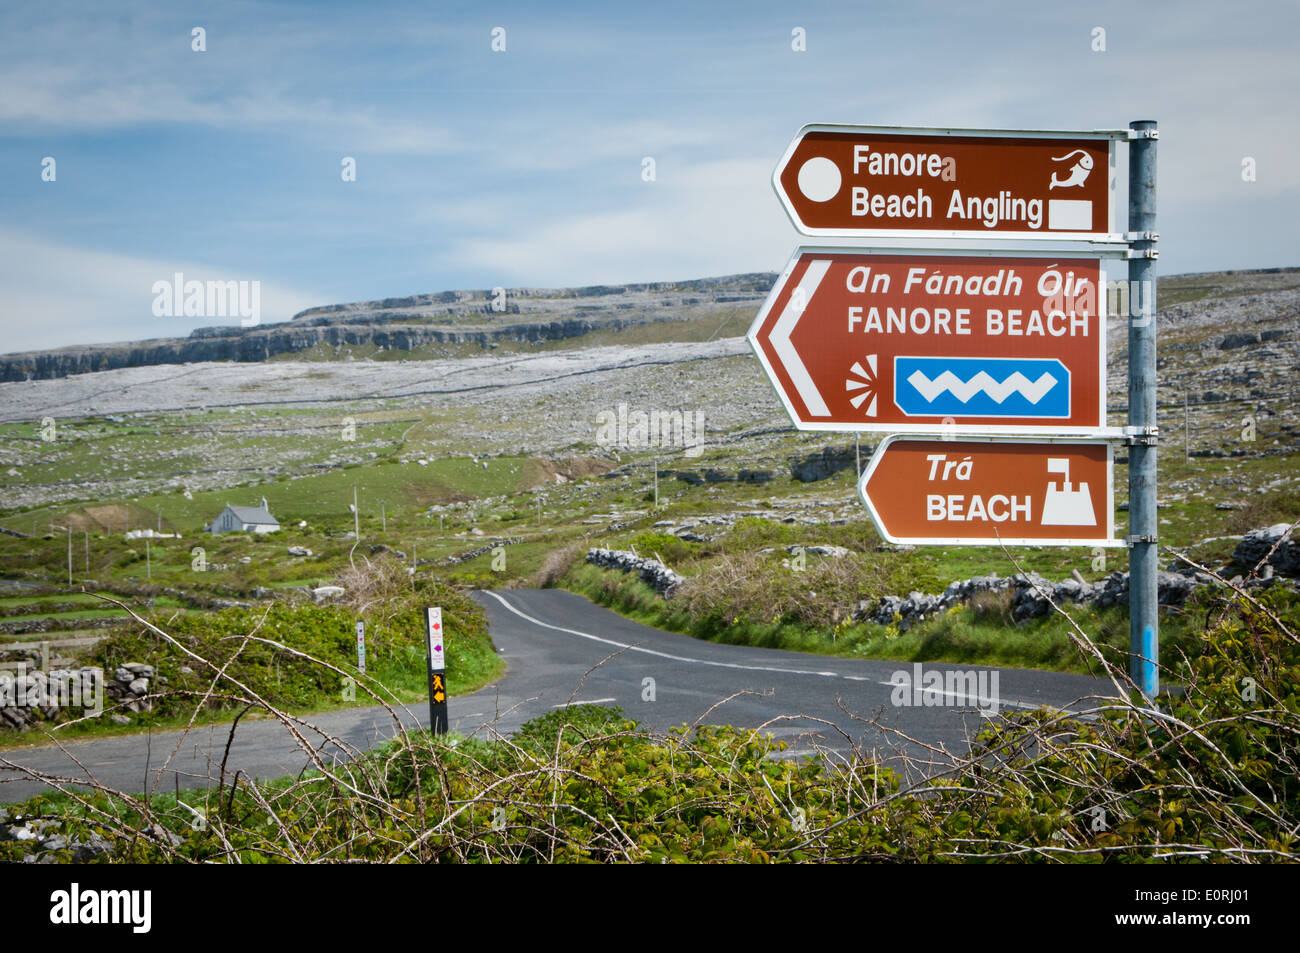 Signposting Wild Atlantic Way route through County Clare in West of Ireland - Stock Image